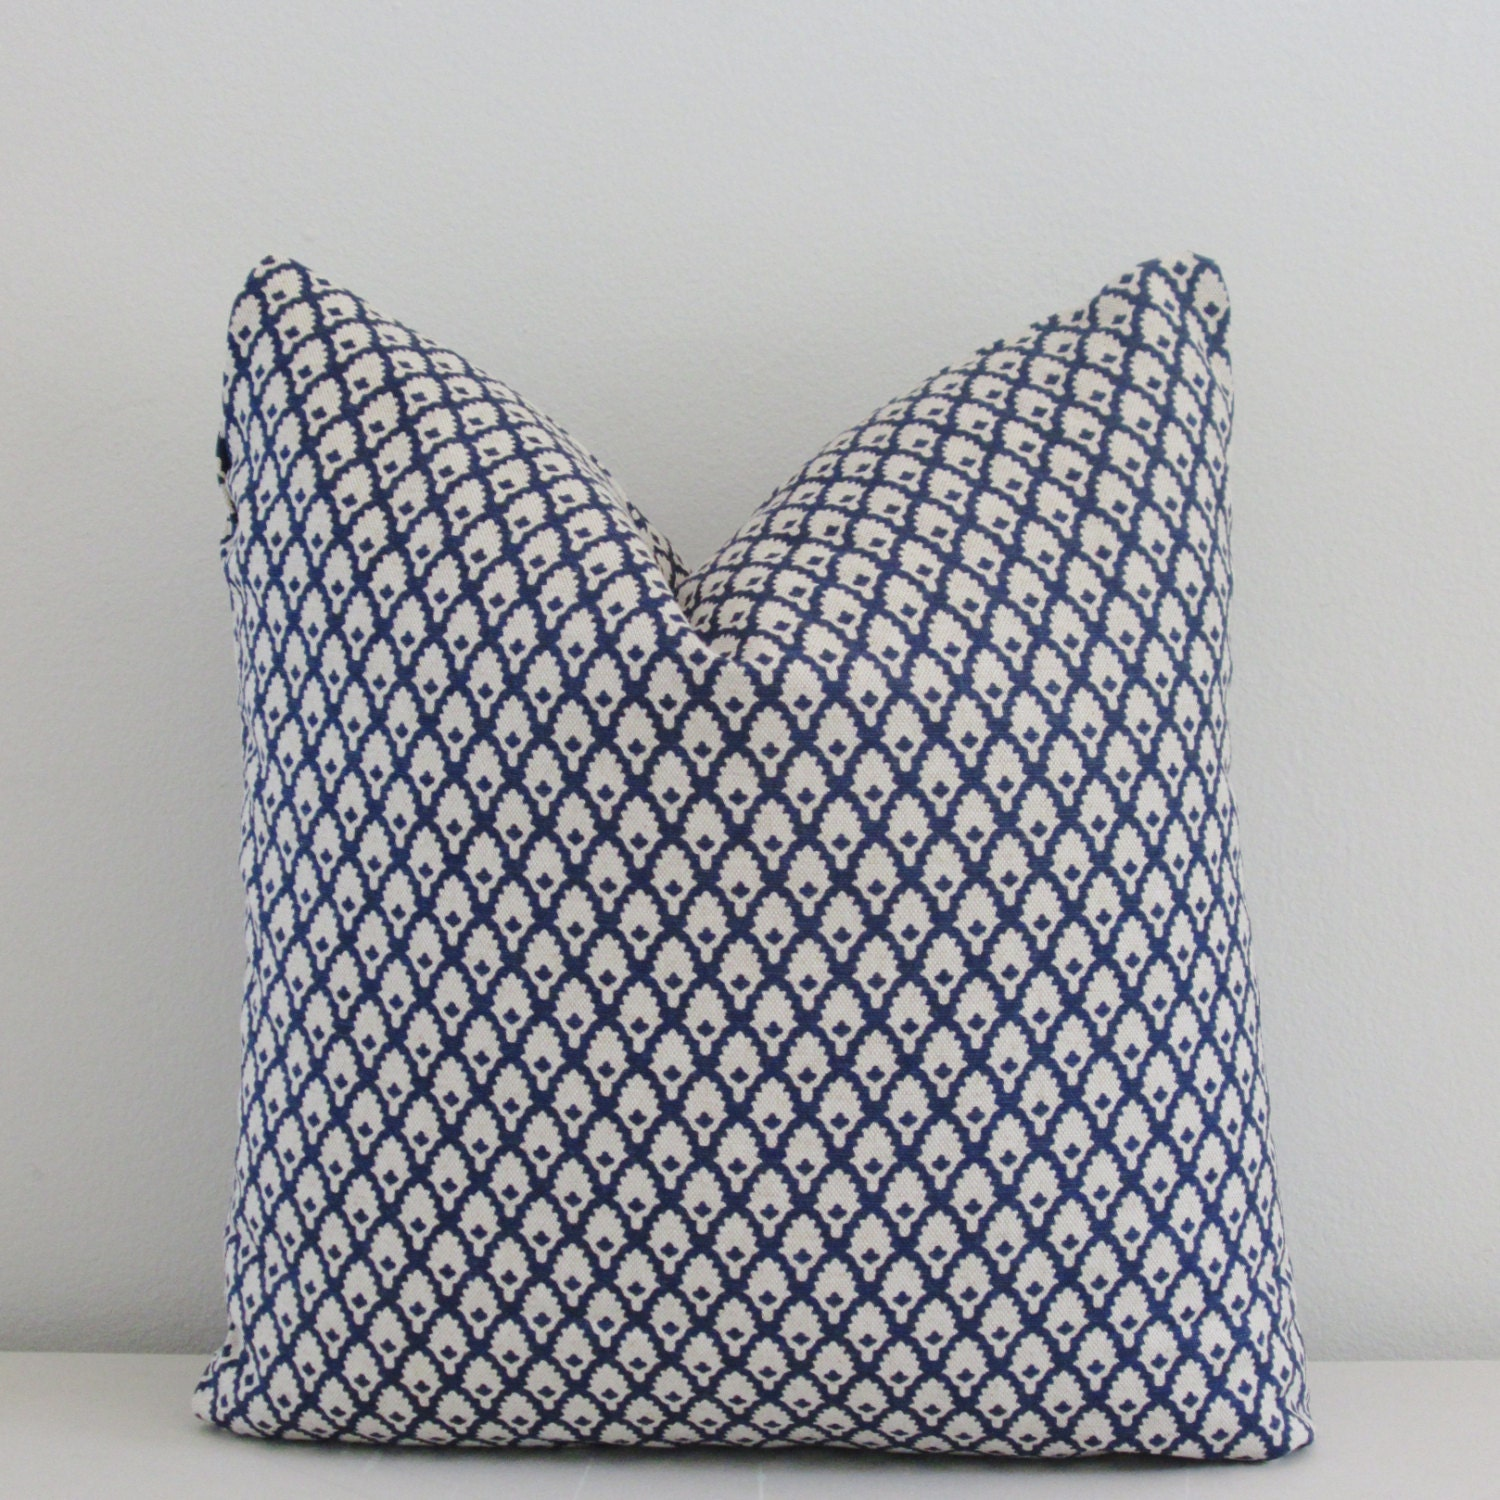 Decorative Linen Pillows : Navy Linen Pillow Cover Decorative Throw Pillow Accent